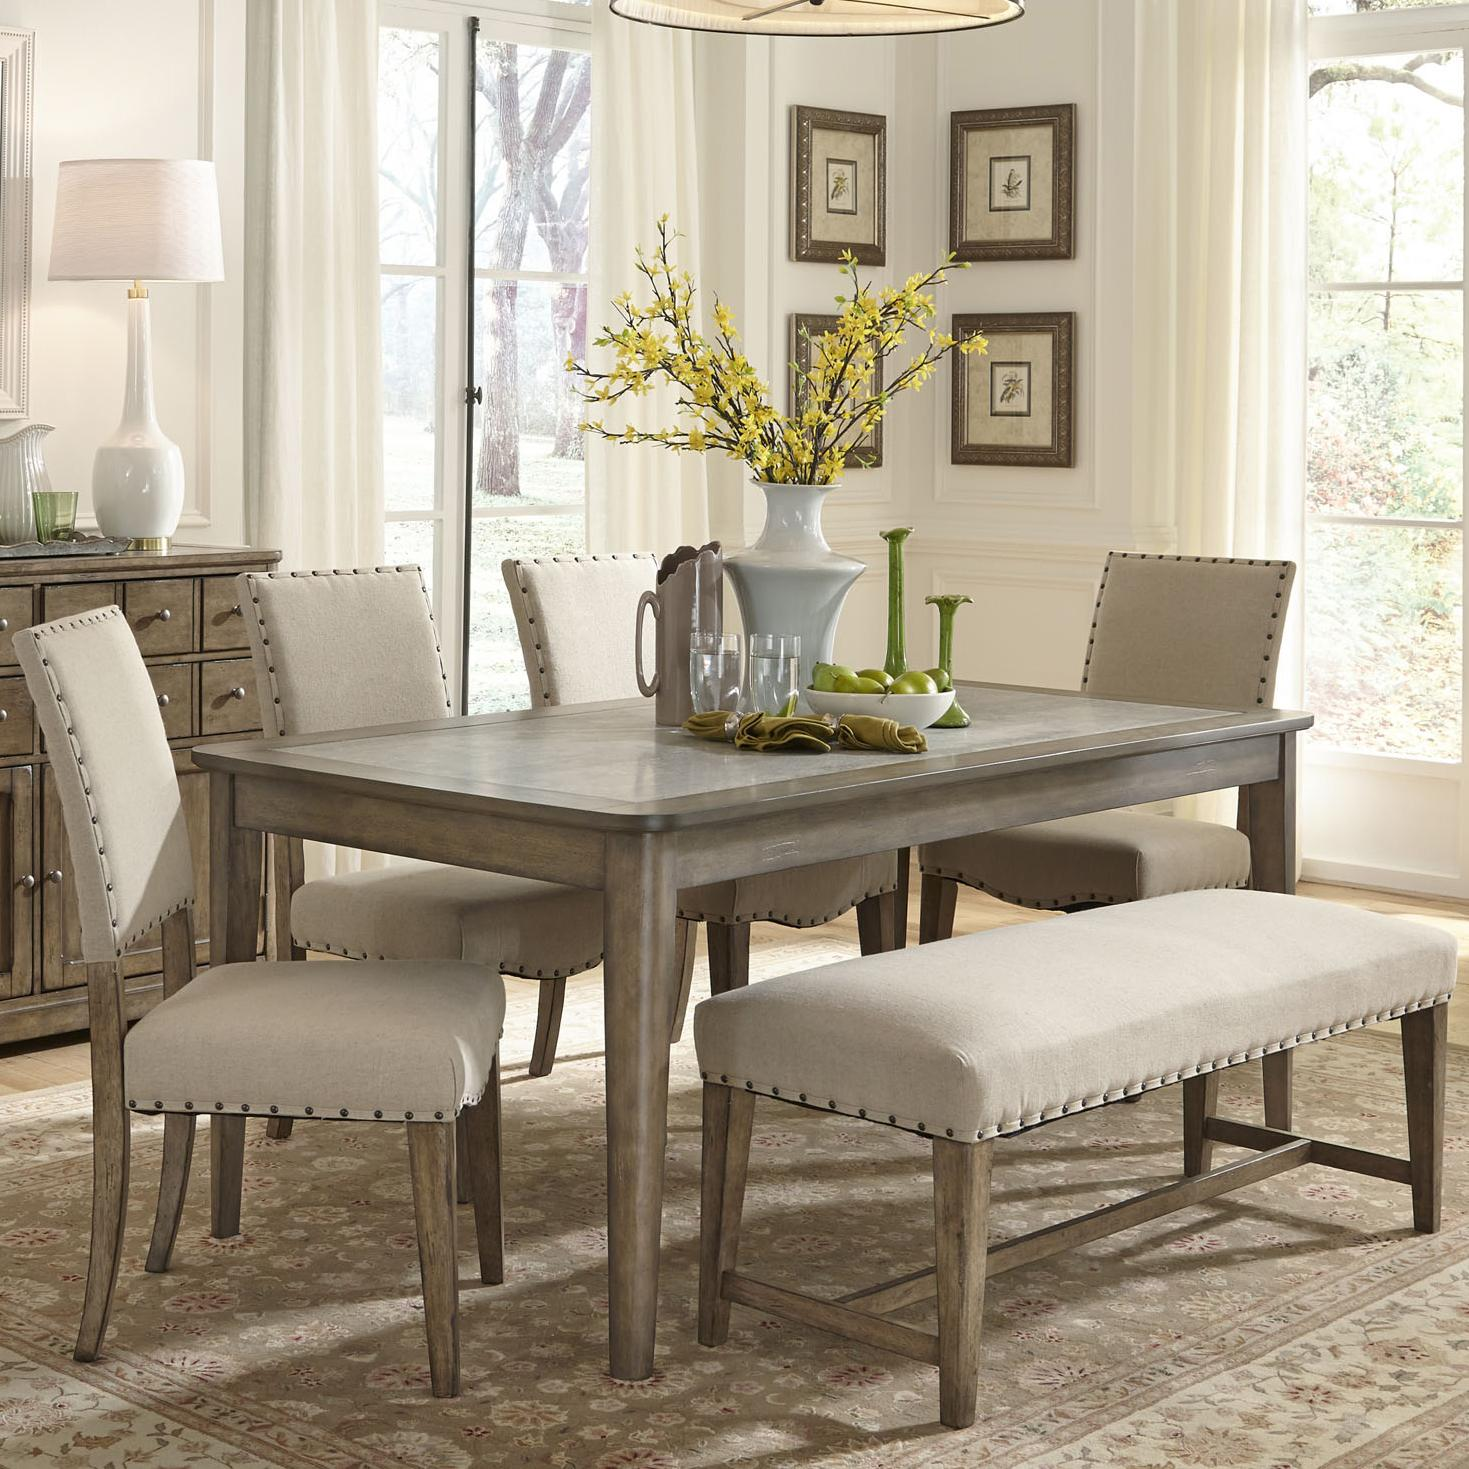 Liberty Furniture Weatherford Rustic Casual 6 Piece Dining Table And Chairs S